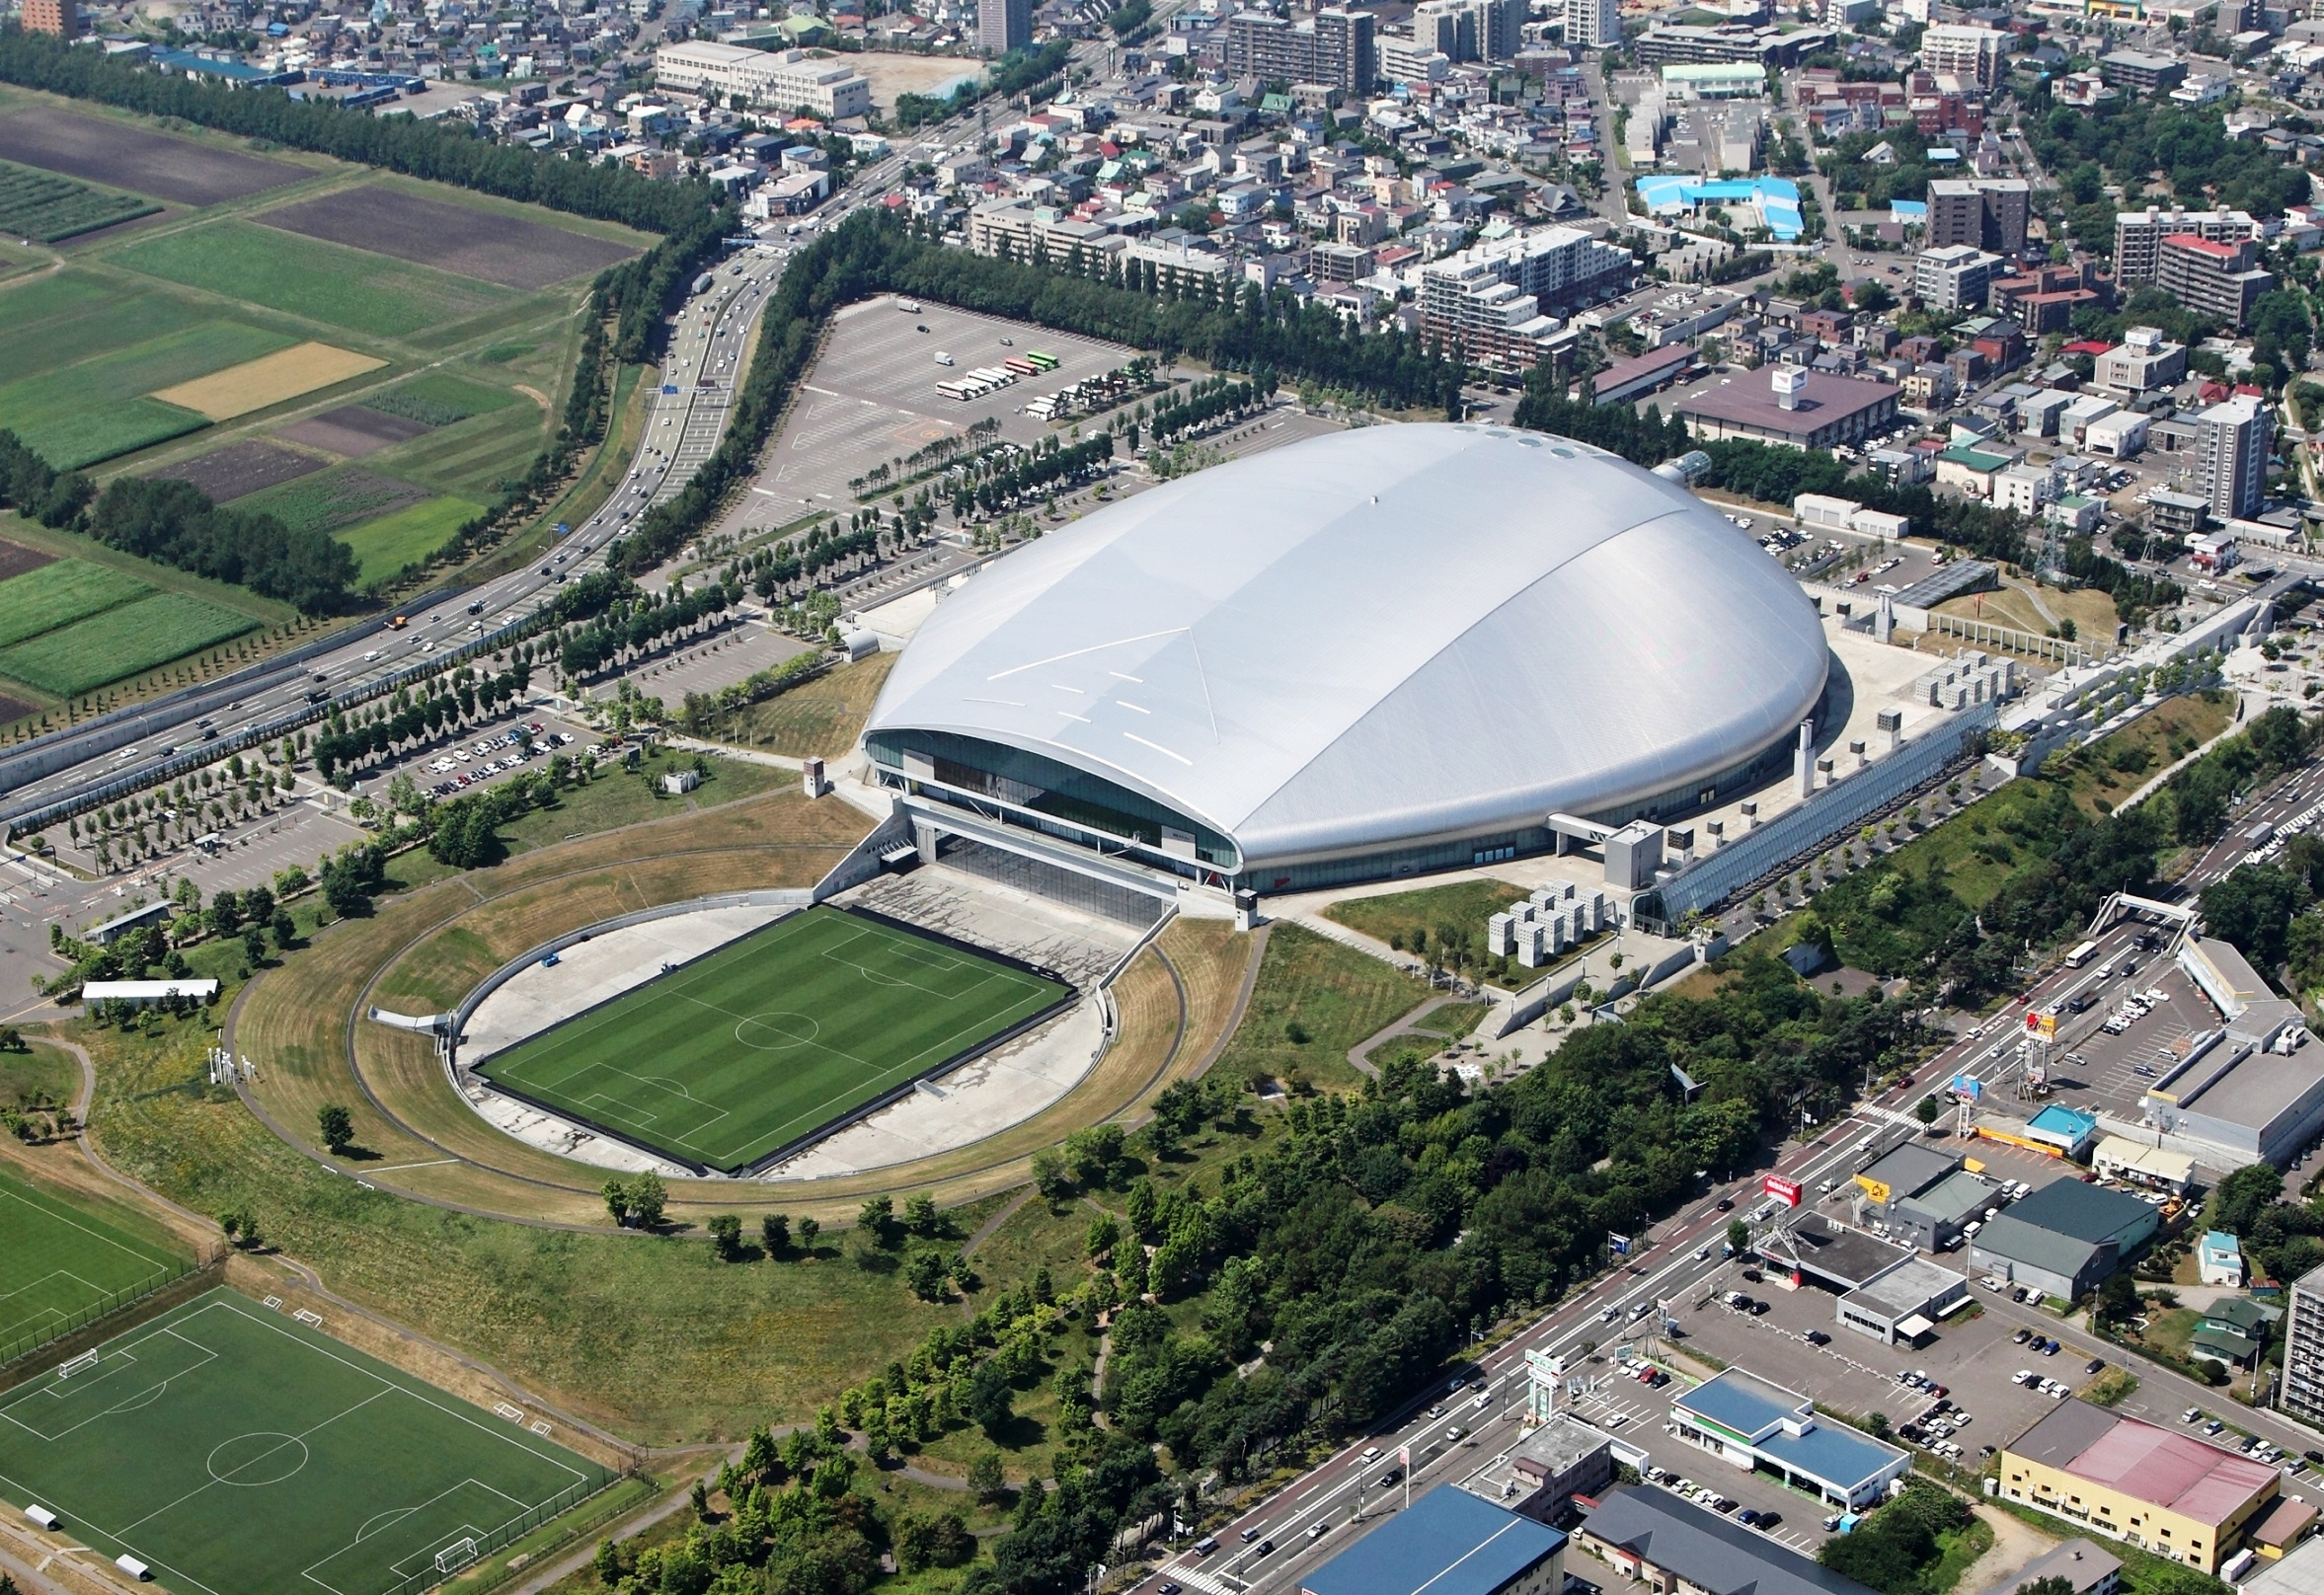 Sapporo Dome  Capacity: 41,410 Address: 1 Hitsujigaoka, Toyohira-ku, Sapporo, Hokkaido Notes: home of Hokkaido Nippon Ham Fighters (NPB), Consadole Sapporo (J. League second division)